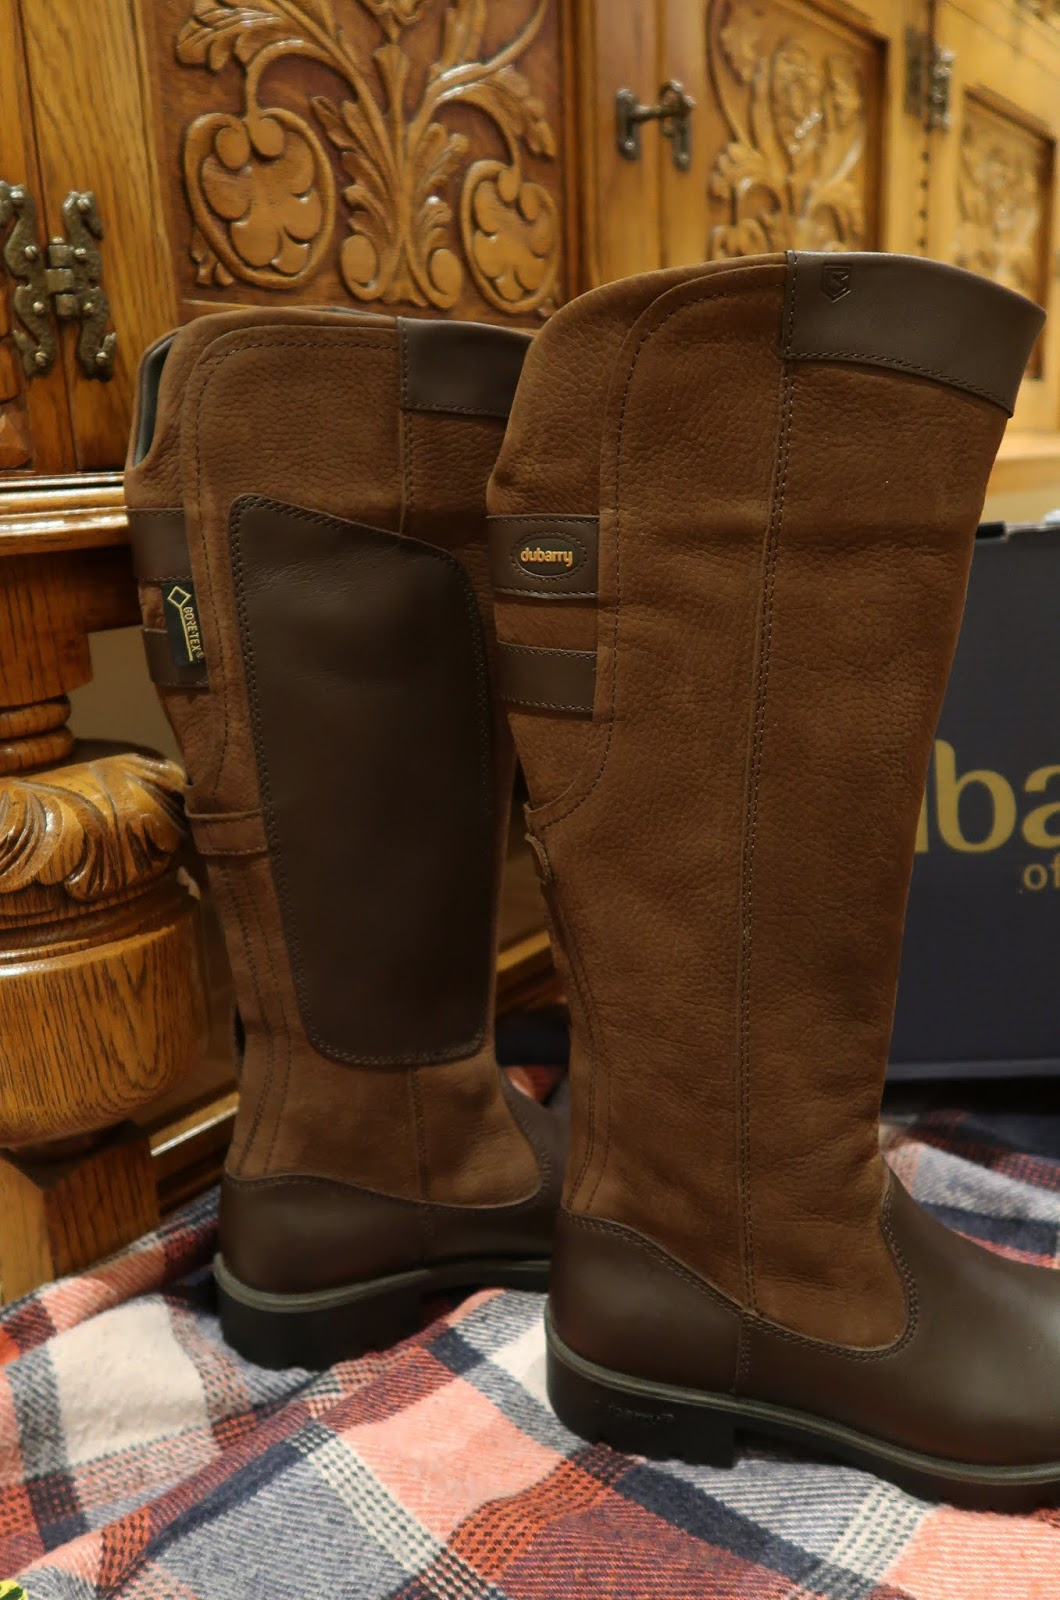 dff7b70a232 Charlotte in England: Dubarry: Boots fit for a Queen